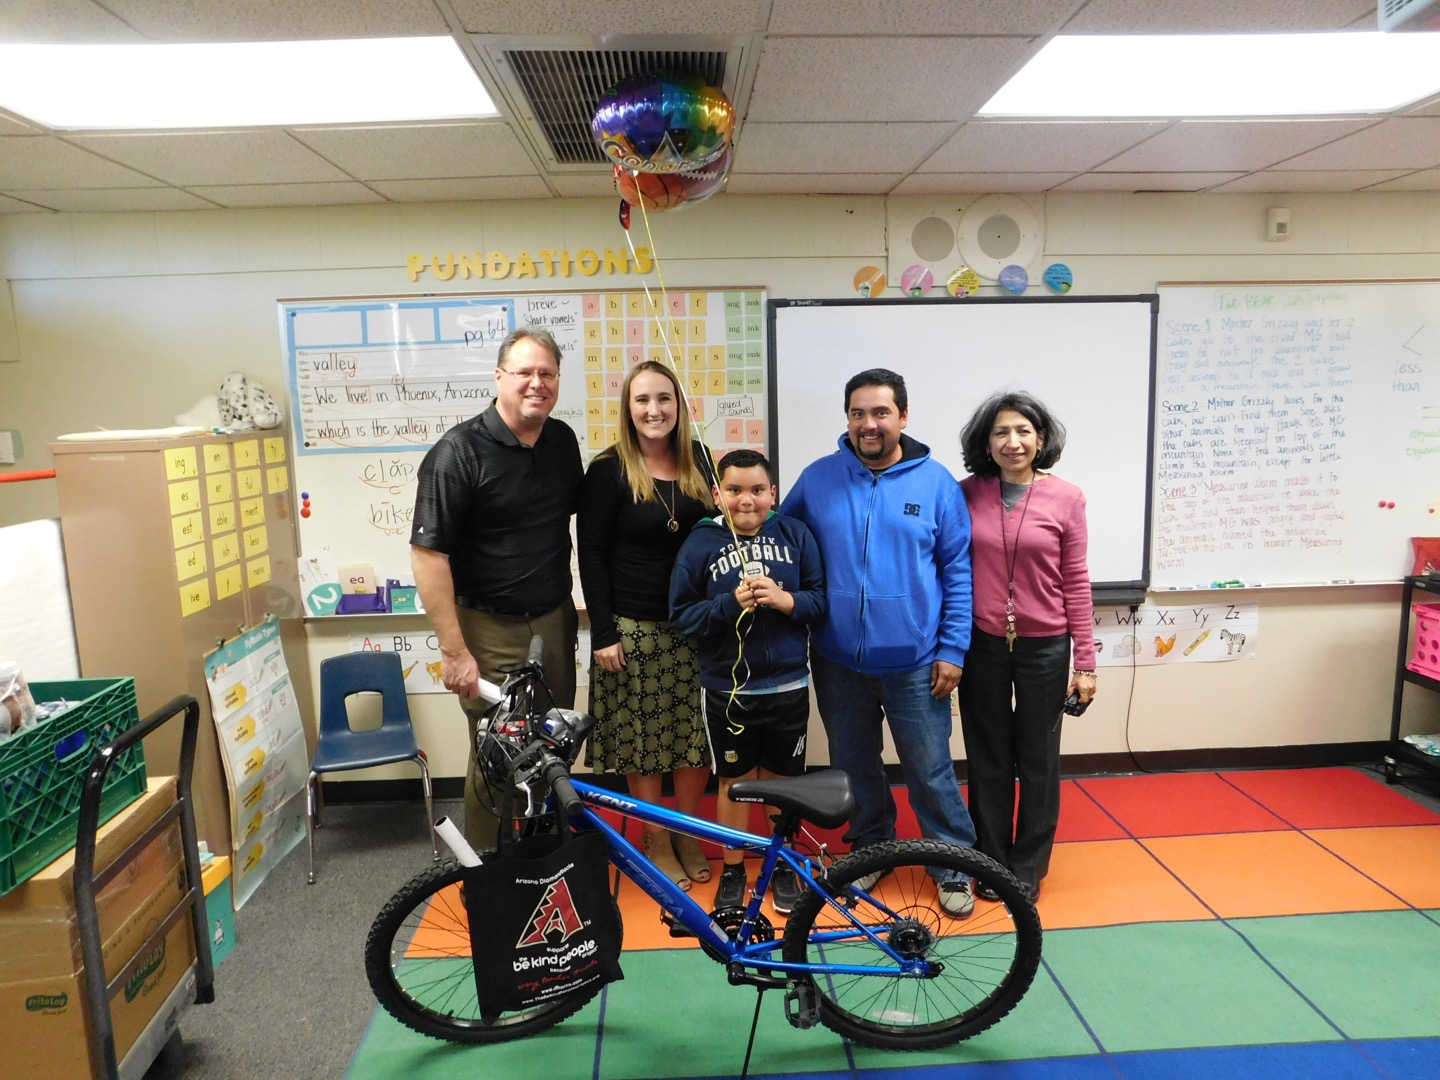 ... in partnership with Subway Restaurants of Arizona, Dasani Water,  Shamrock Farms and The Be Kind People Project, rode into Galveston  Elementary School in ...